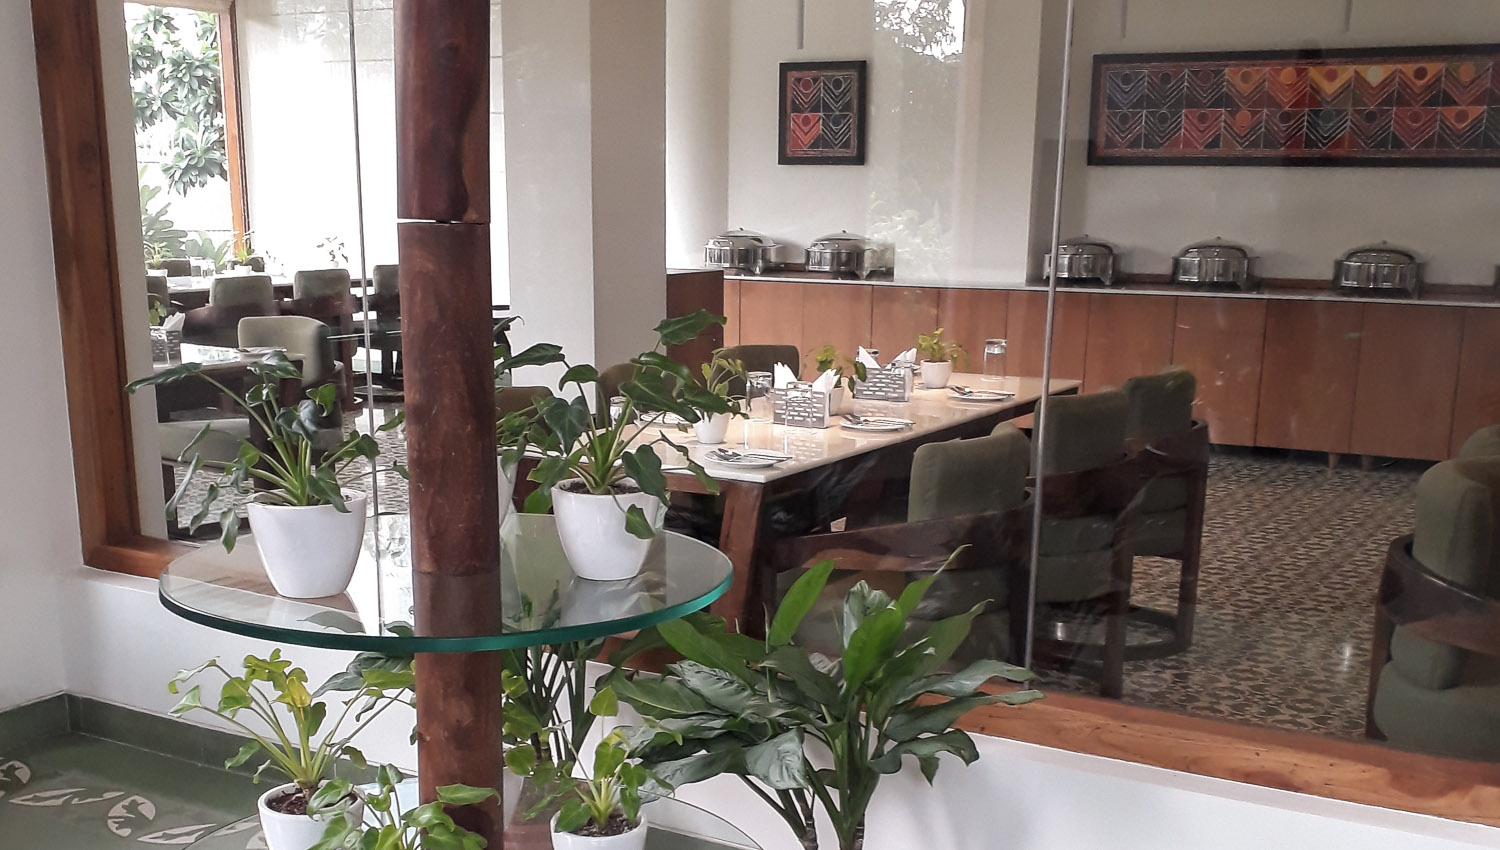 Green plants in the common areas. Image:  © Ambica Gulati